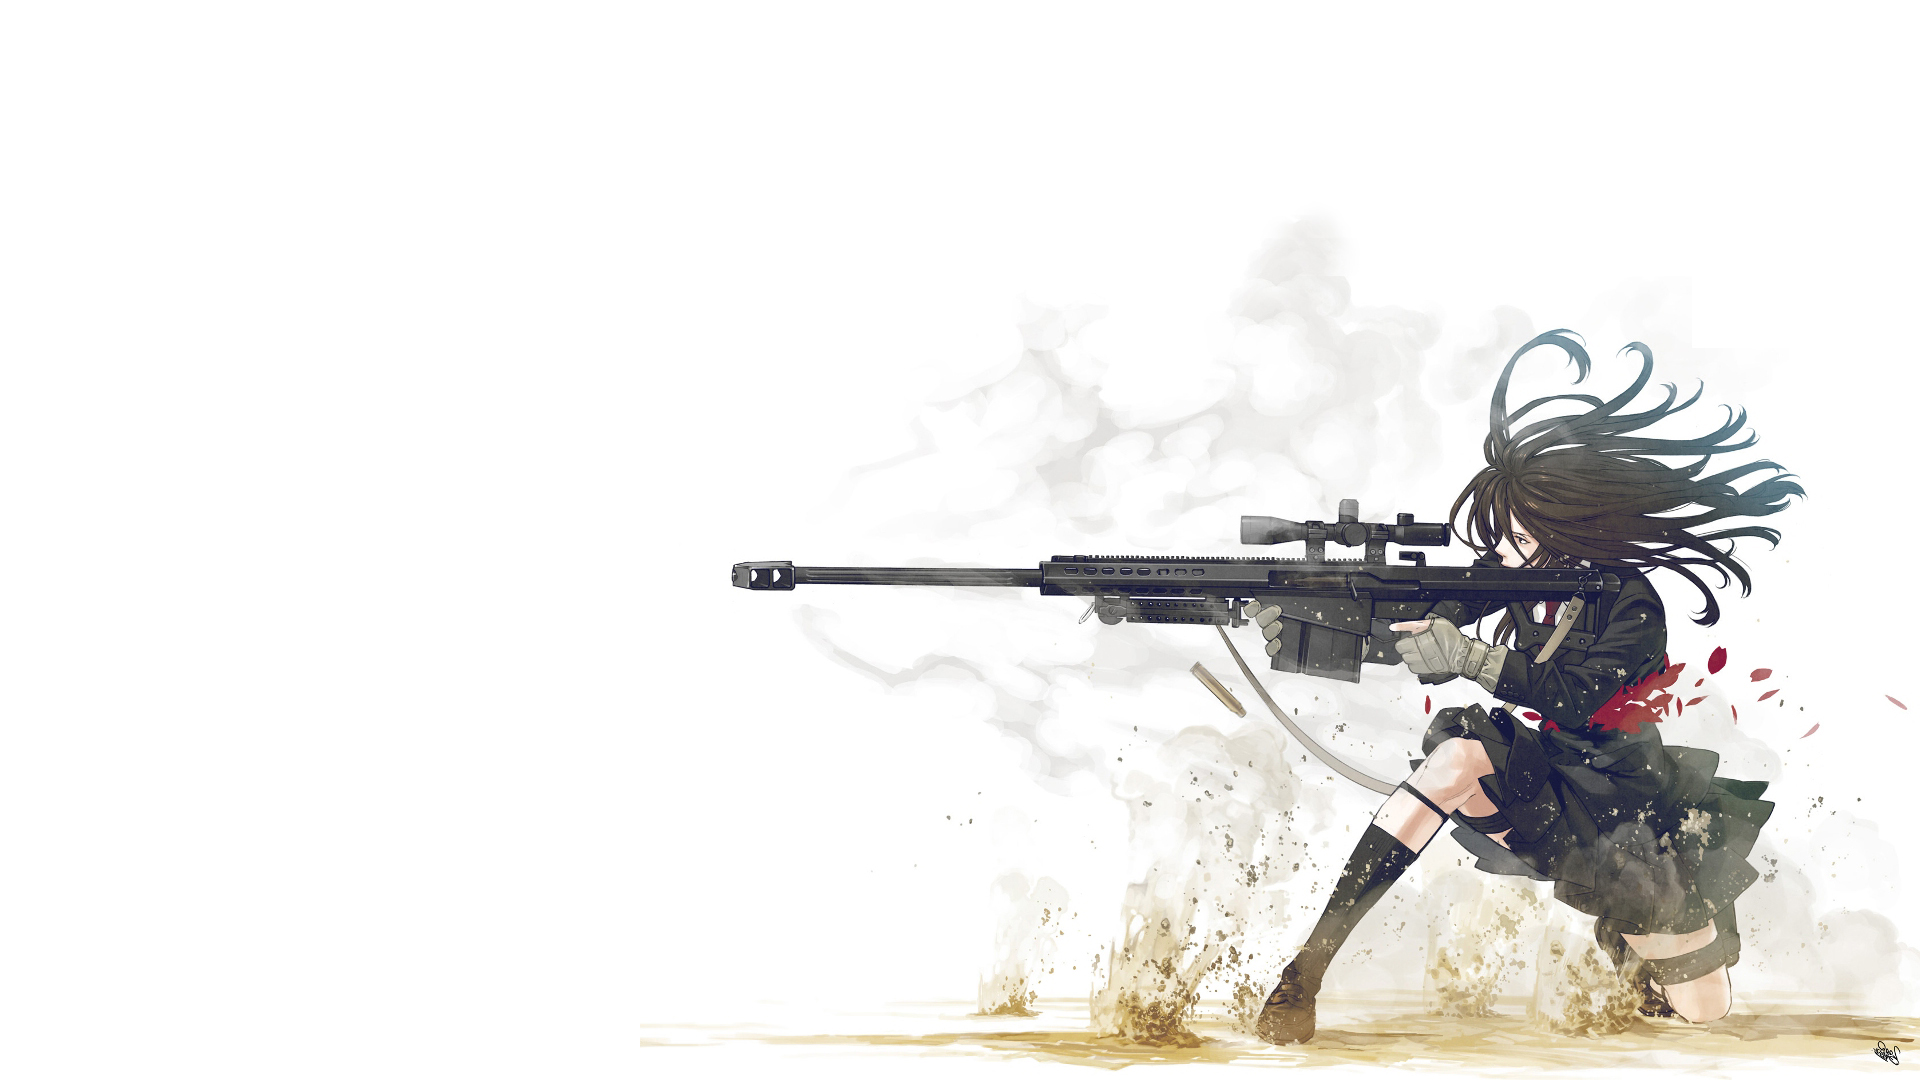 Anime Girl With Gun HD Wallpaper 1920x1080 | girl | Pinterest